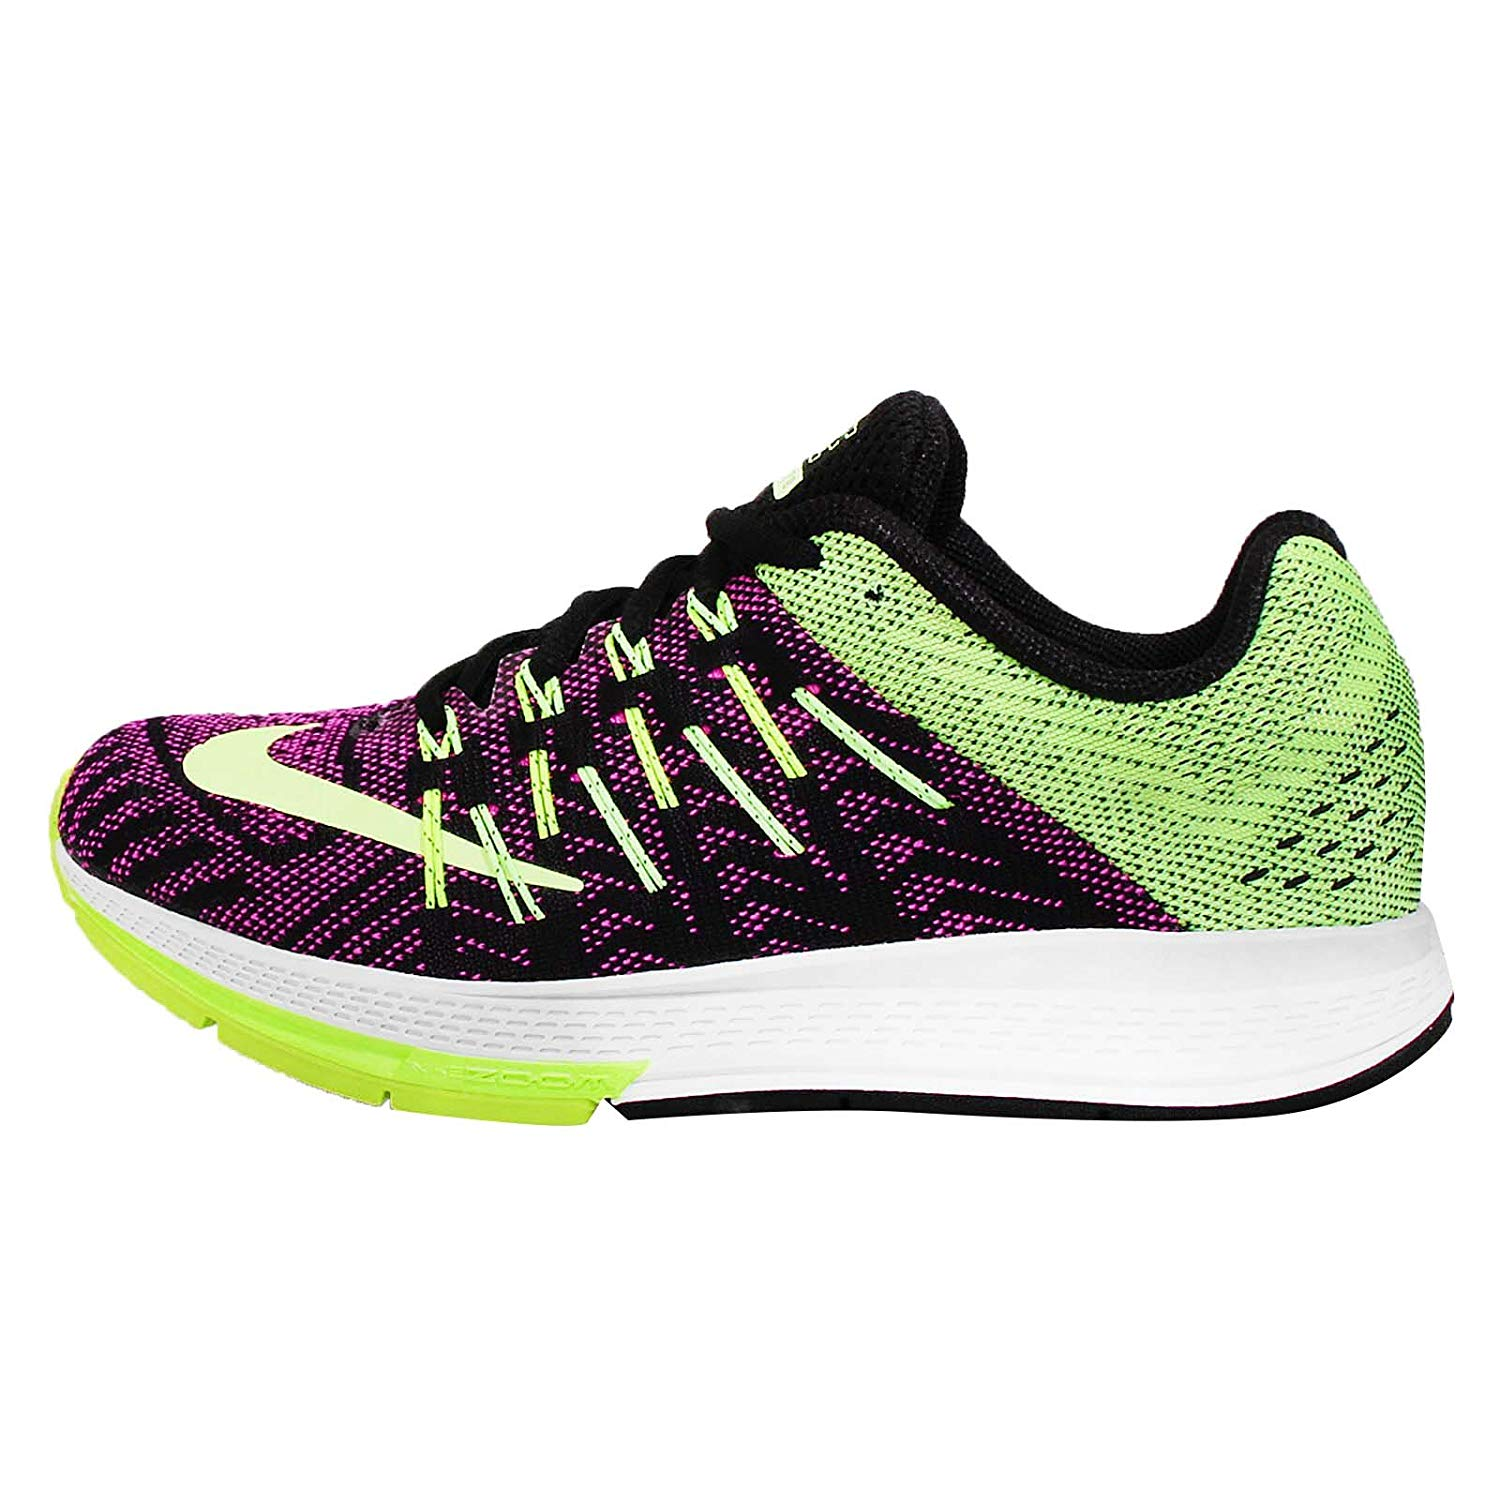 best website 379d7 7183e Details about Nike Women s Air Zoom Elite 8 Shoes Black Ghost Green-Volt-Pink  Pow Size 8.5M